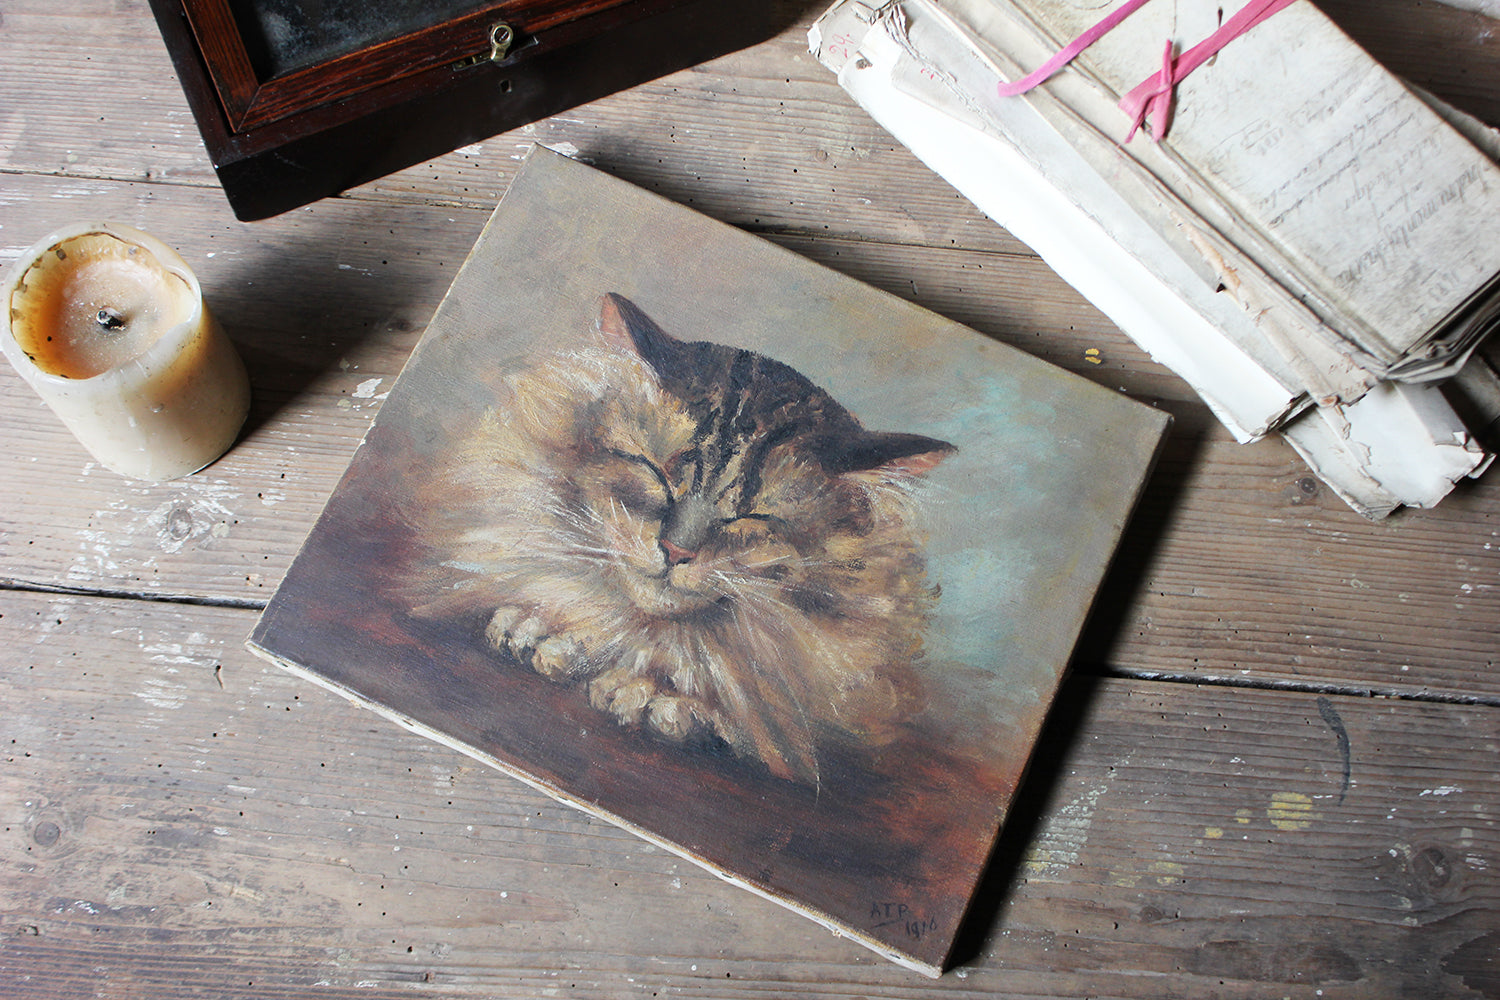 A Charming Early 20thC Oil on Canvas Portrait of a Maine Coon Tabby Cat Dated to 1916; From the Attics at Rokeby Park, County Durham